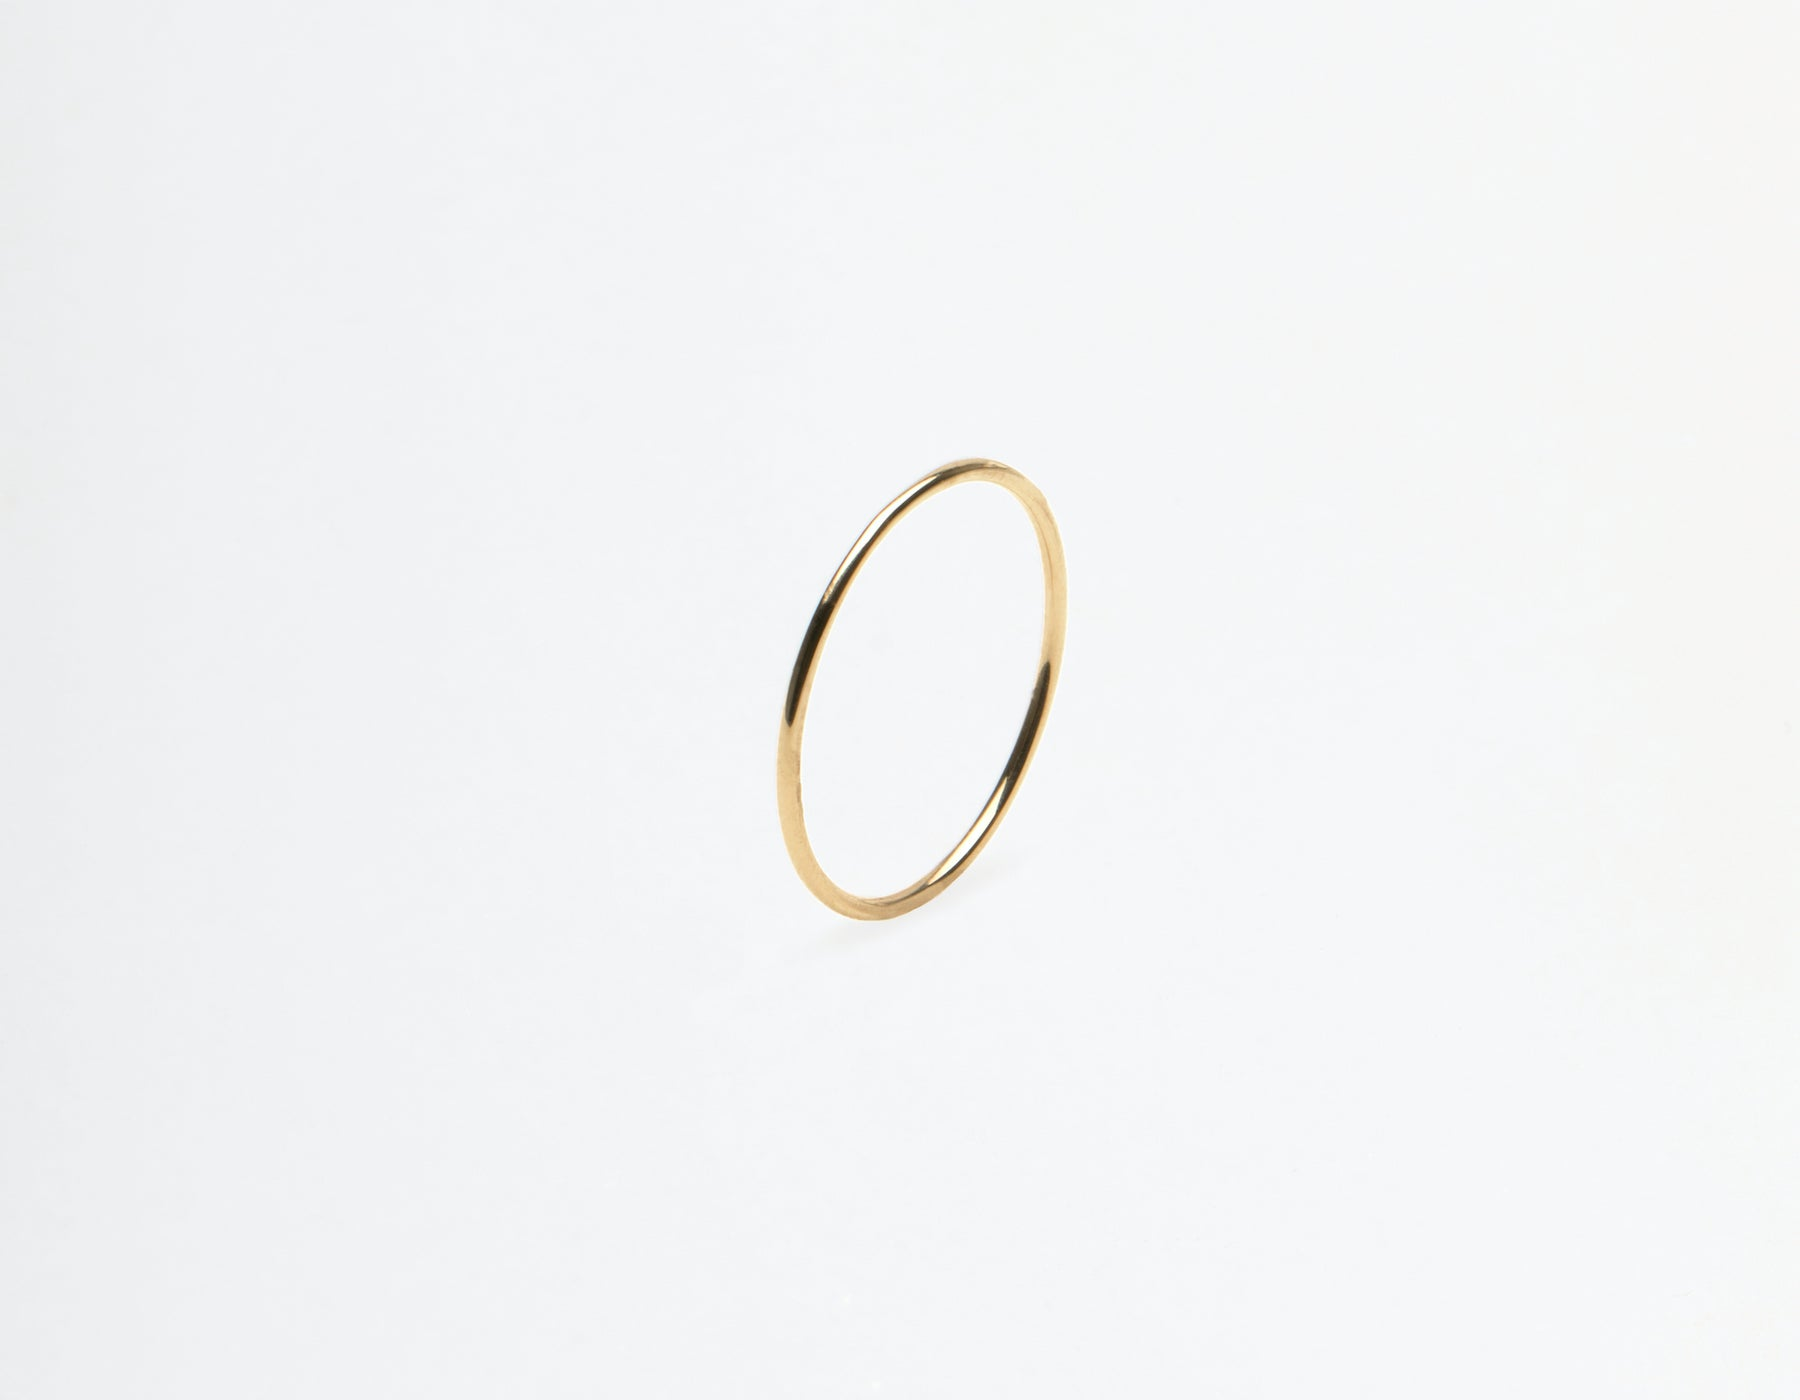 Vrai and Oro 14k solid gold Skinny Stacking Ring single minimalist band, 14K Yellow Gold